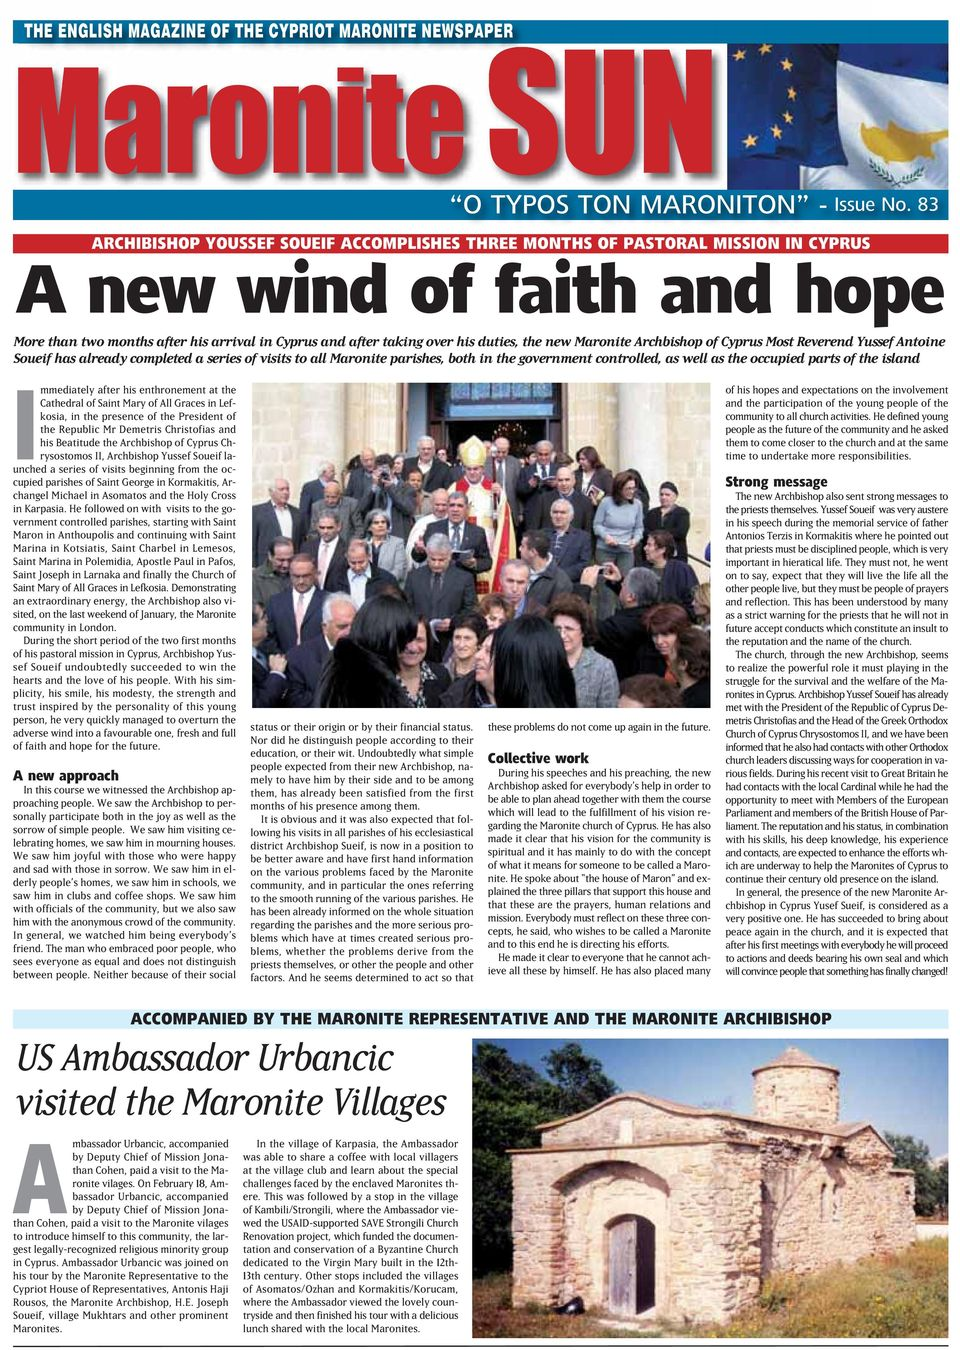 new Maronite Archbishop of Cyprs Most Reverend Yssef Antoine Soeif has already completed a series of visits to all Maronite parishes, both in the government controlled, as well as the occpied parts